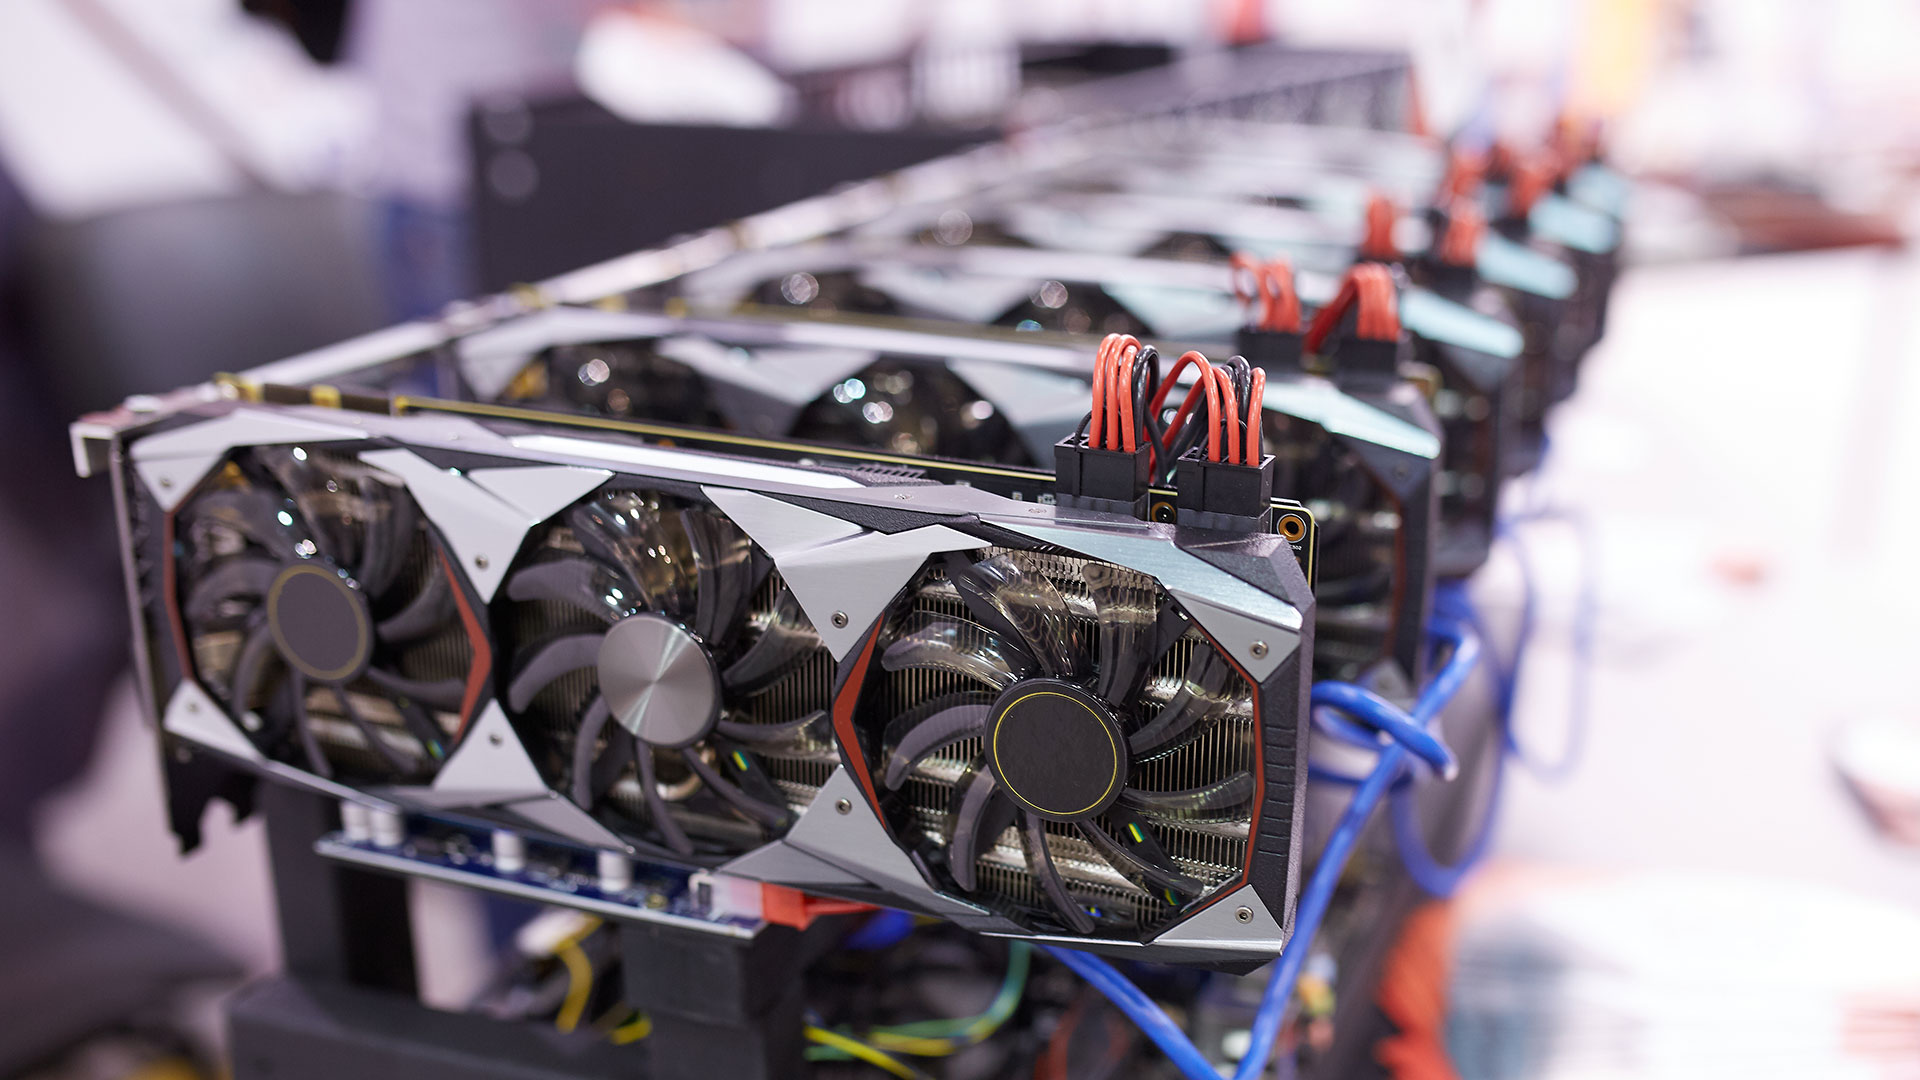 Cryptomining continues to grow as demand for graphics cards